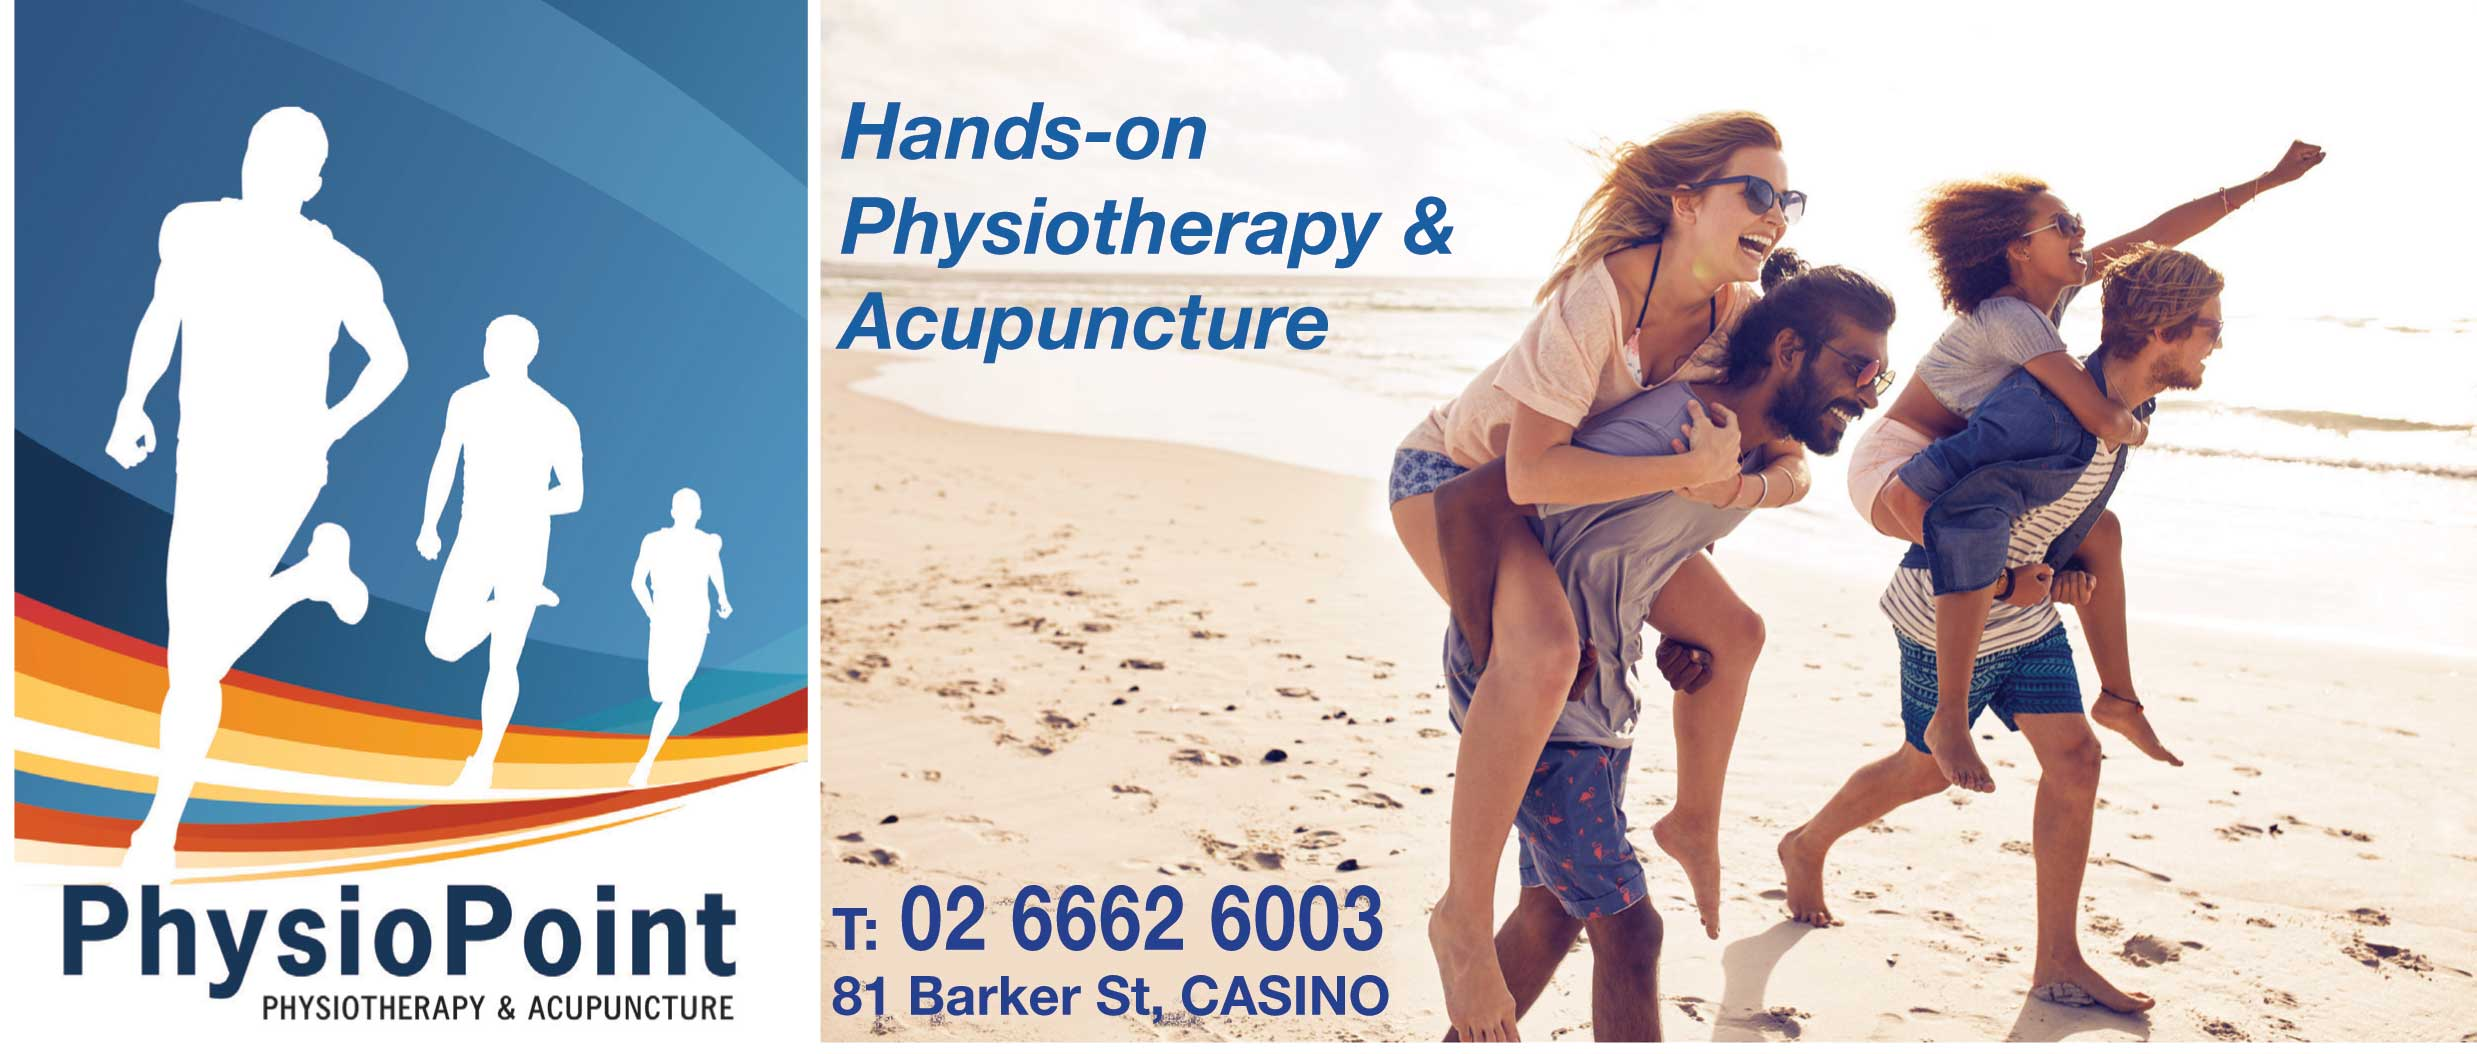 Effective hands on physiotherapy and acupuncture from PhysioPoint physiotherapy and acupuncture in Casino NSW